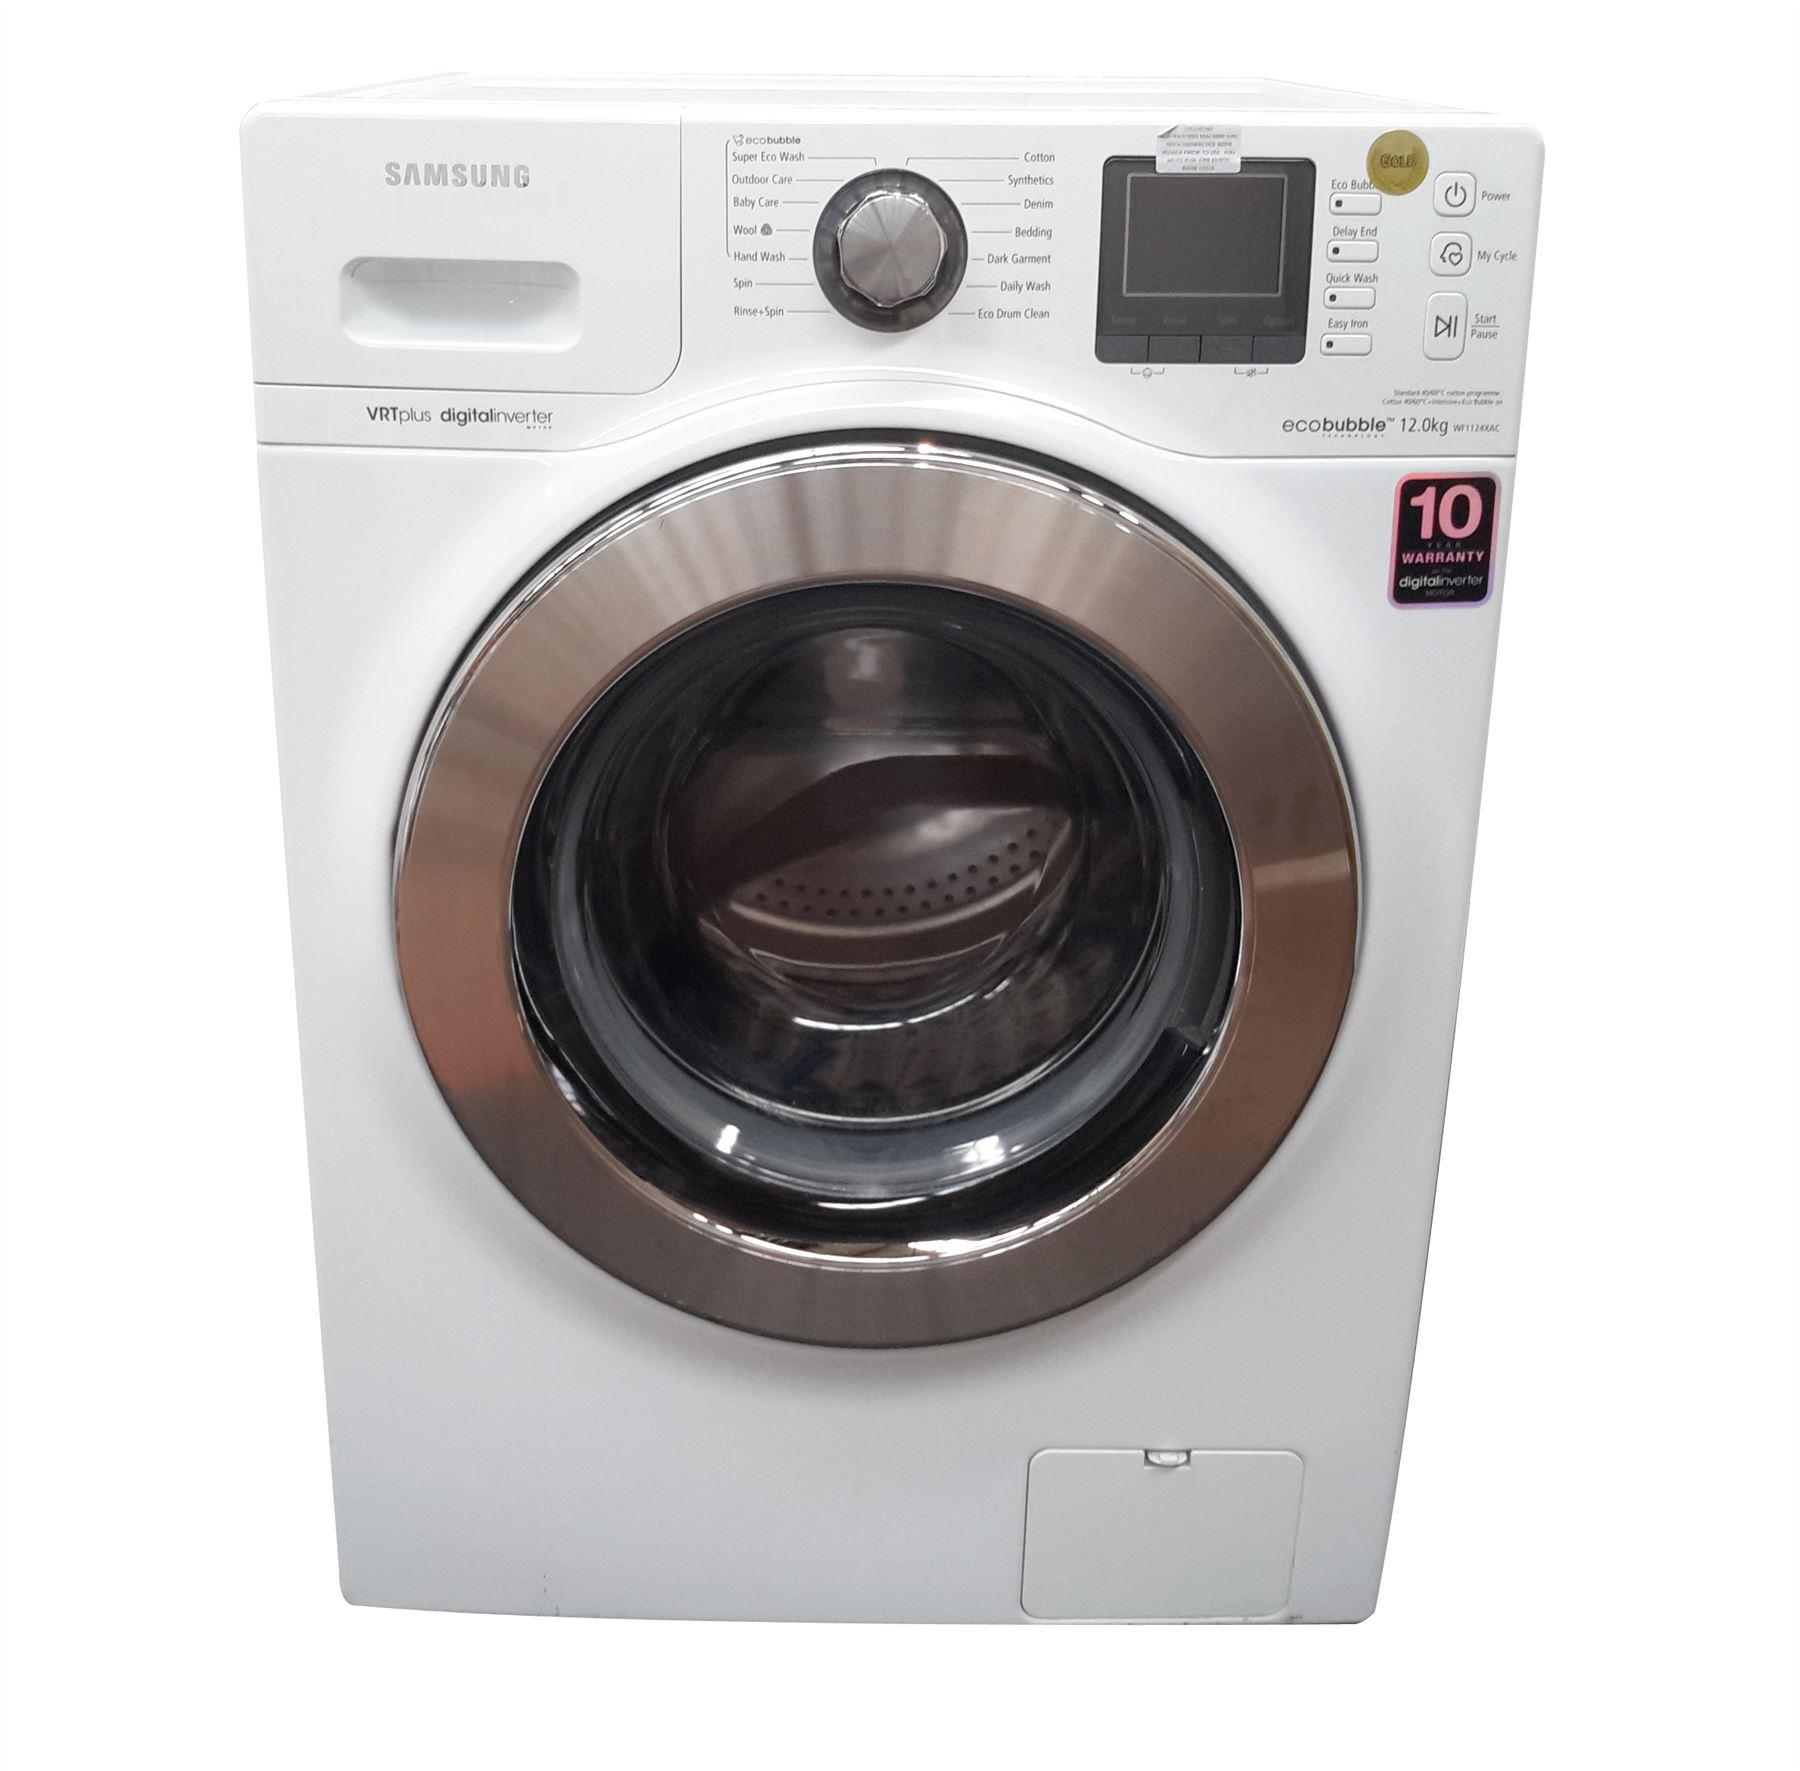 samsung wf1124xac xeu eco bubble washing machine 12kg wash load 1400 rpm spin a energy rating. Black Bedroom Furniture Sets. Home Design Ideas